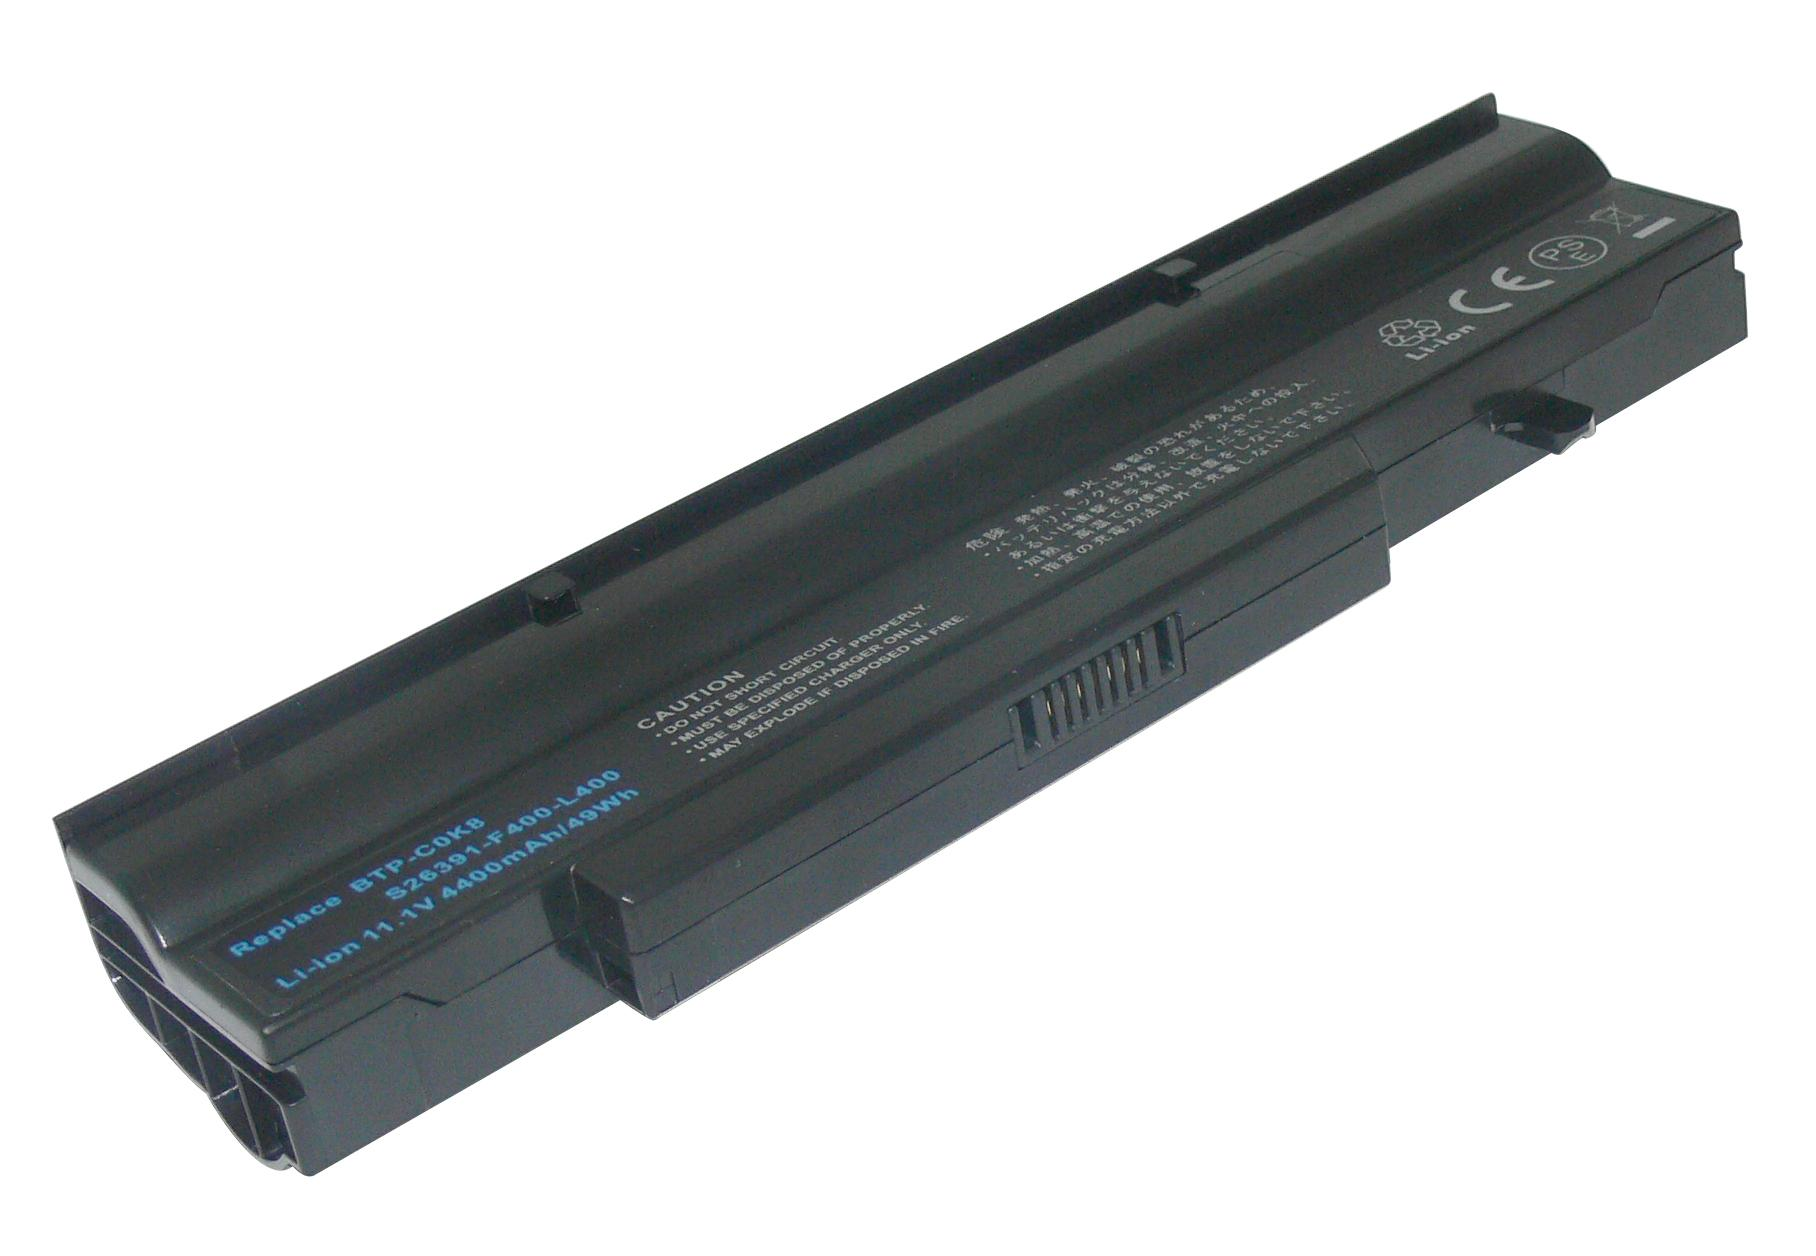 Replacement Fujitsu 60.4P311.051 Battery